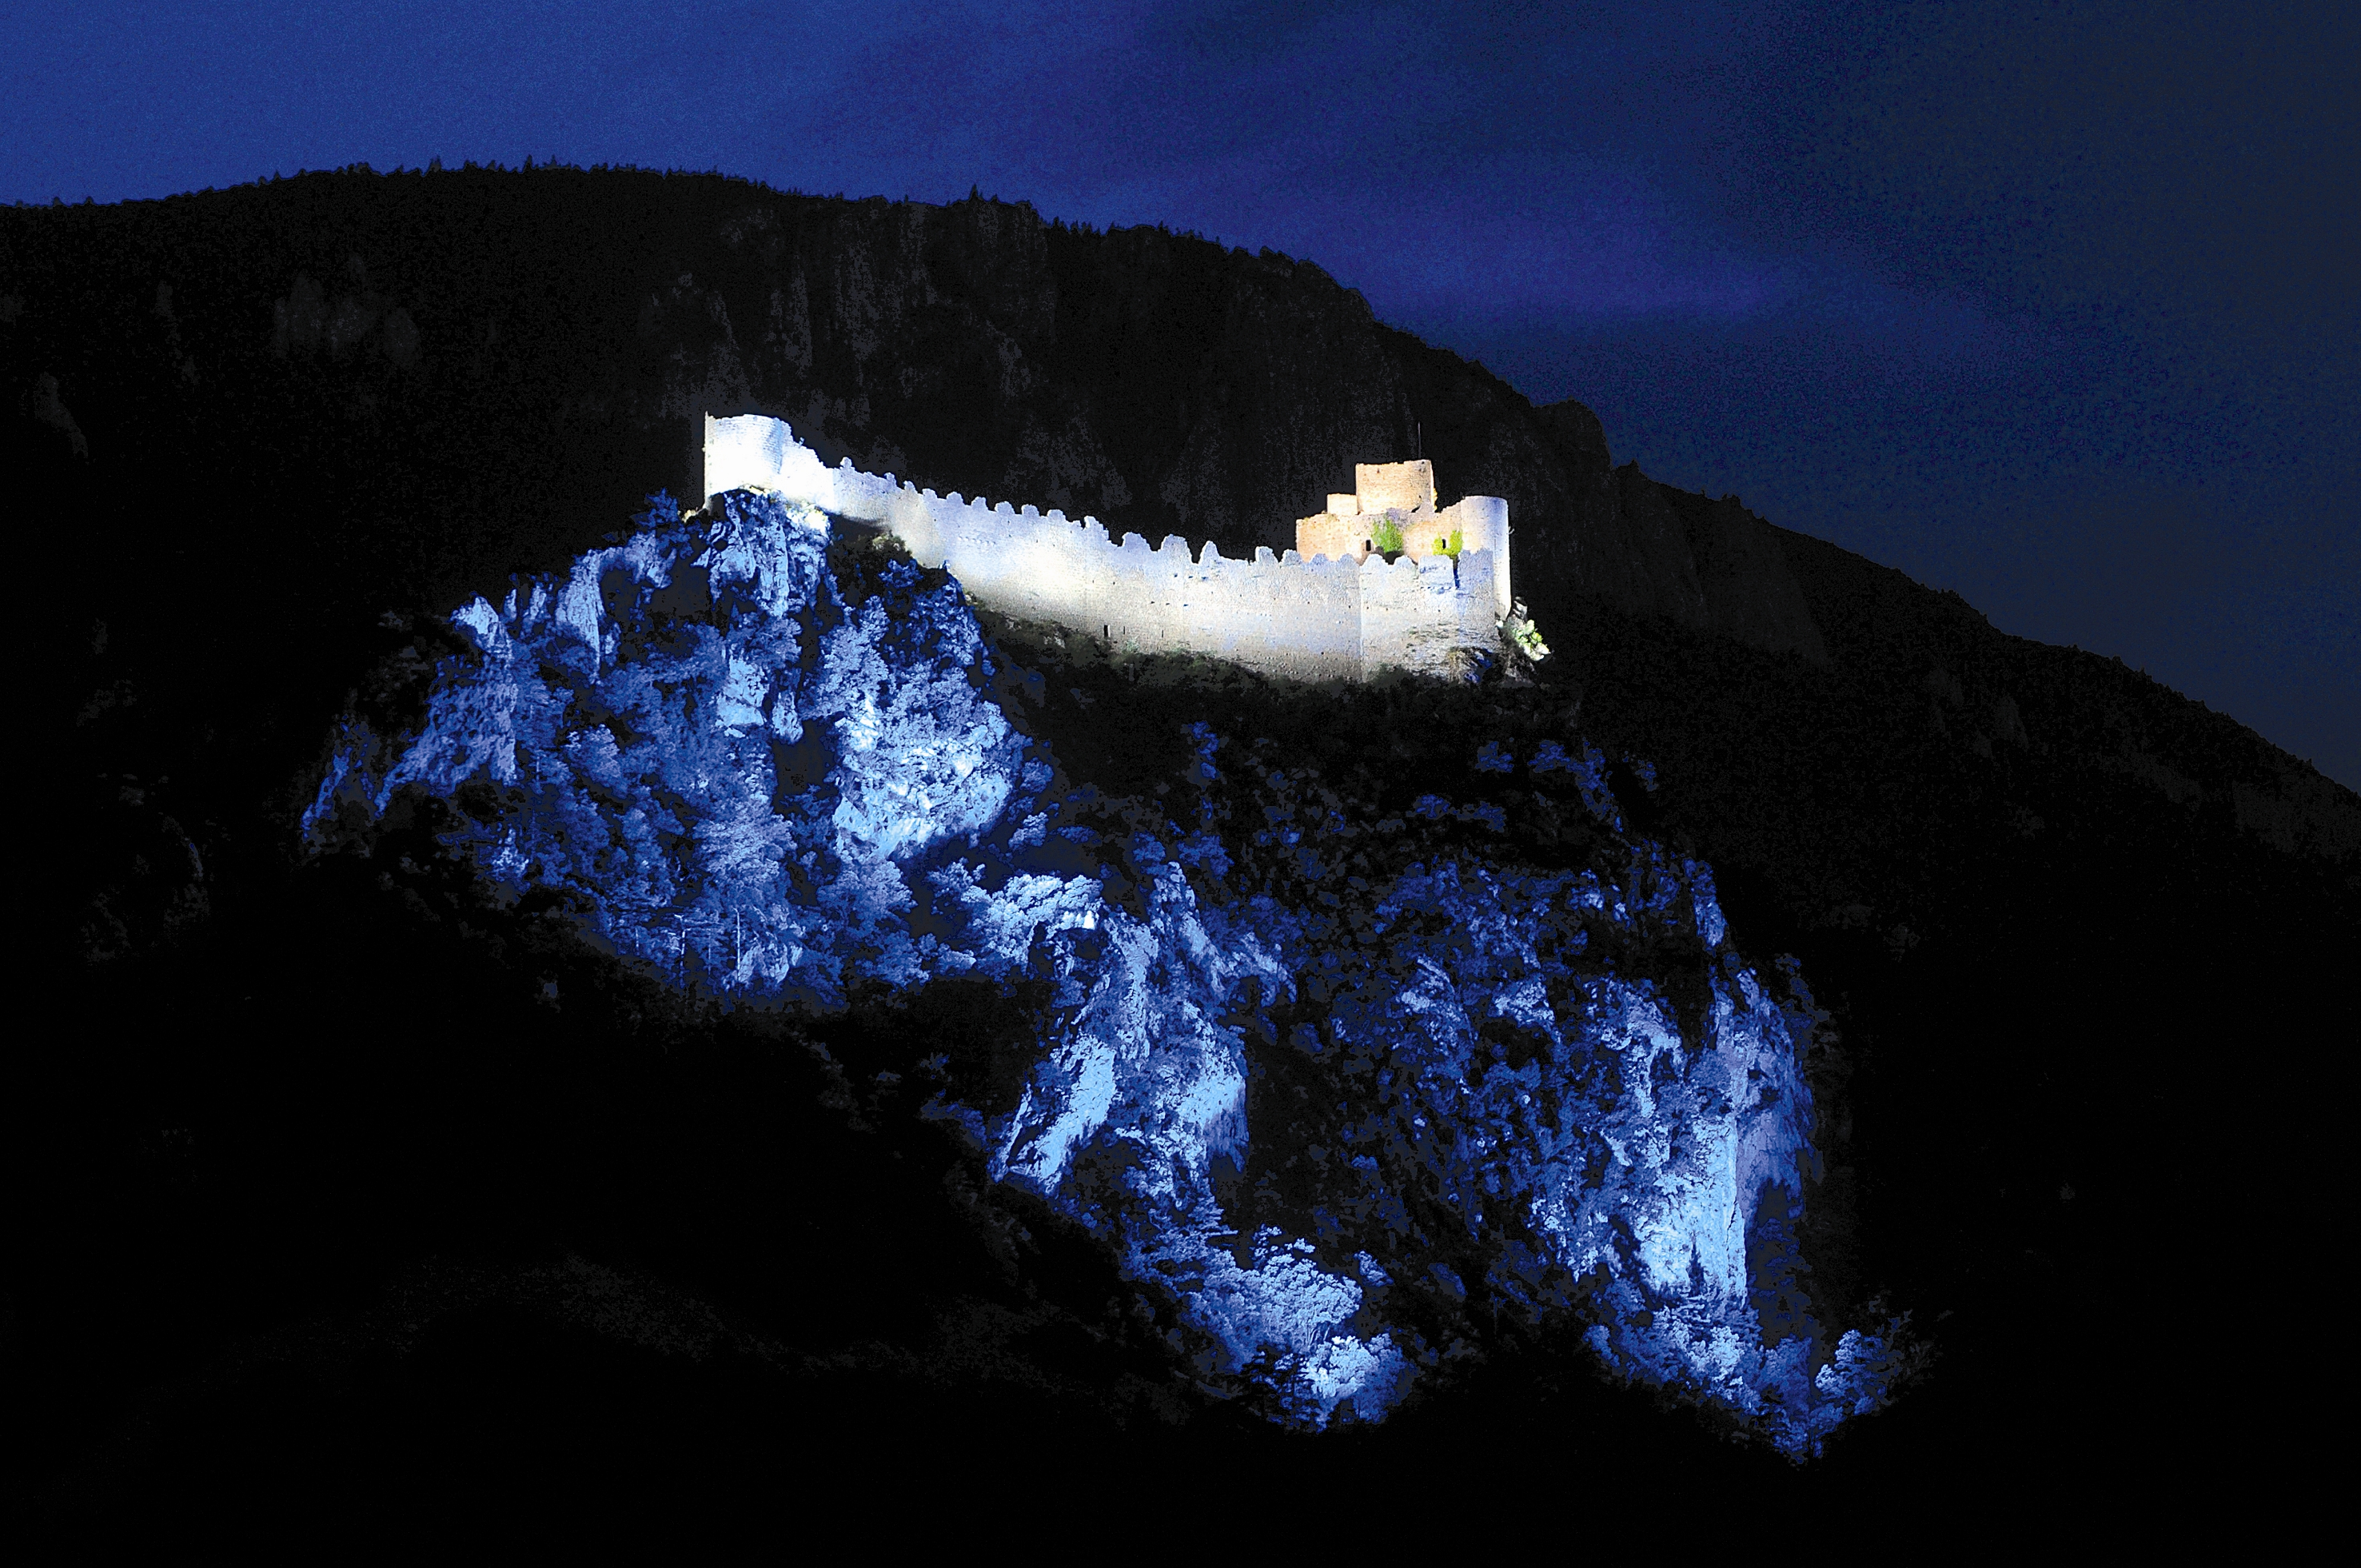 Les LED illuminent une citadelle cathare